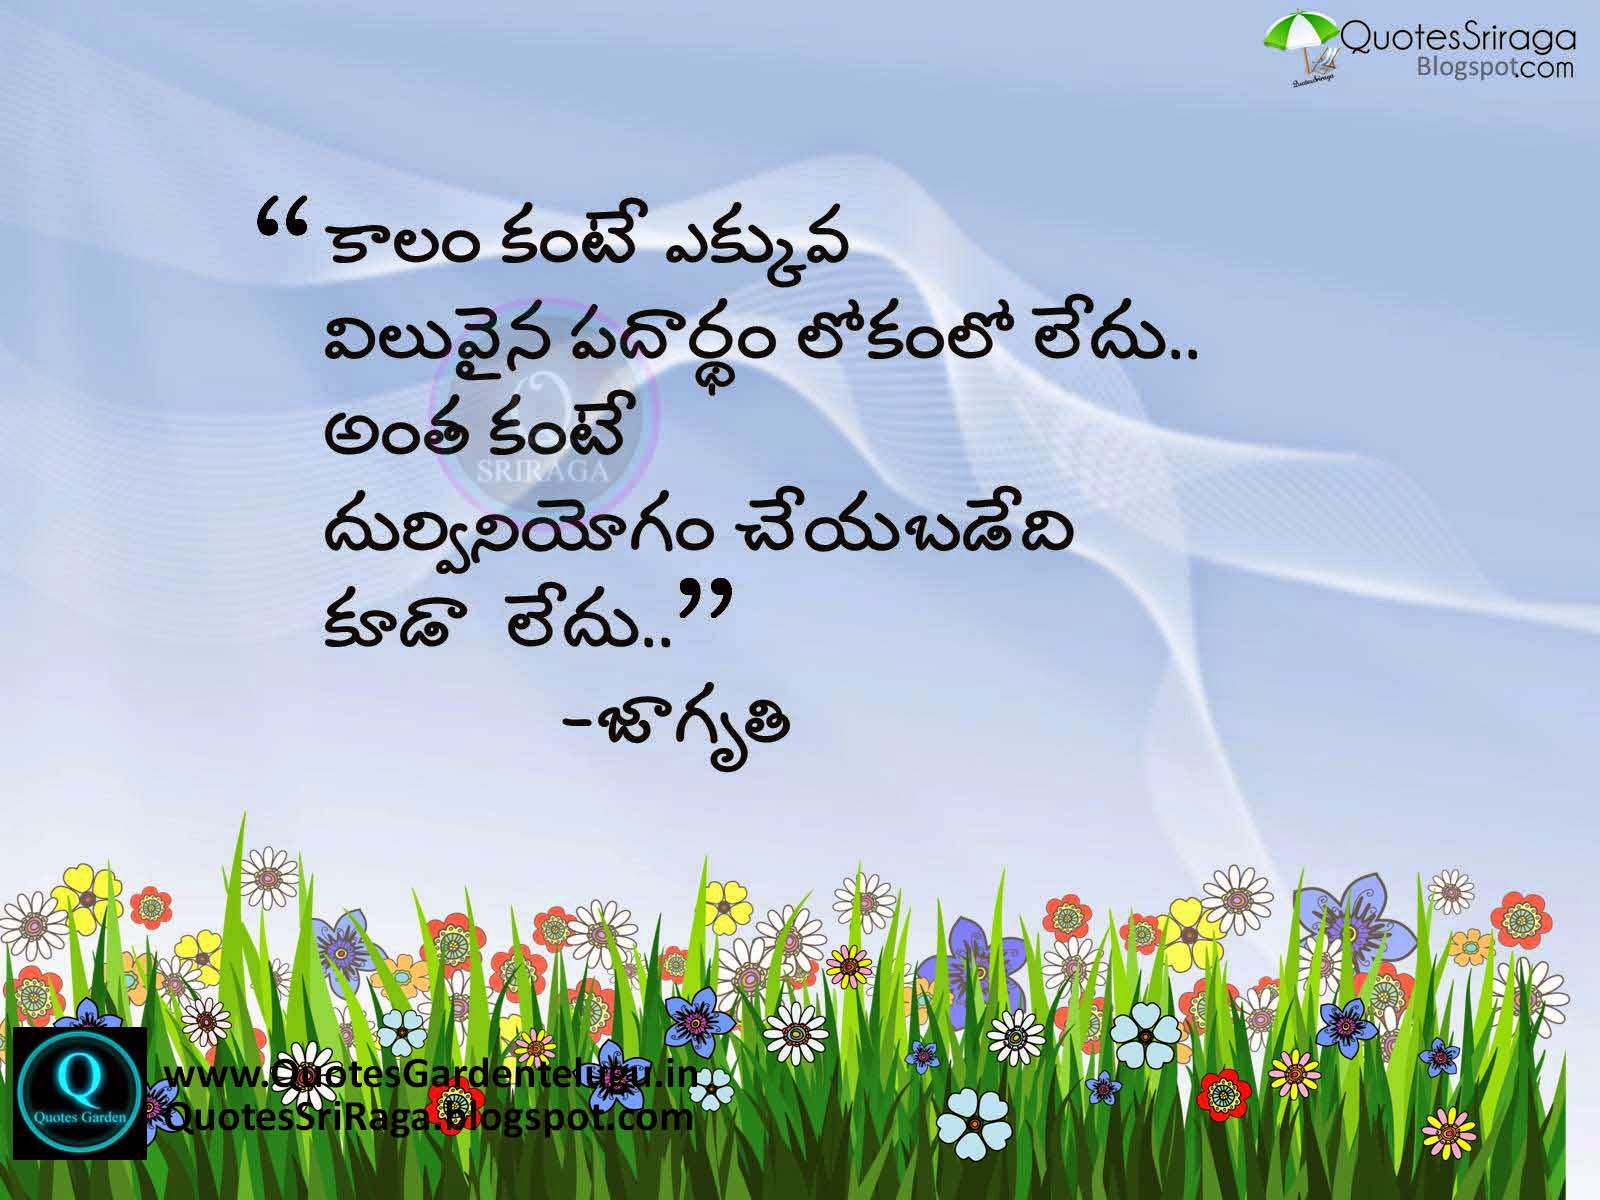 Best Telugu Quotes Inspirational Telugu Quotes Life Quotes With